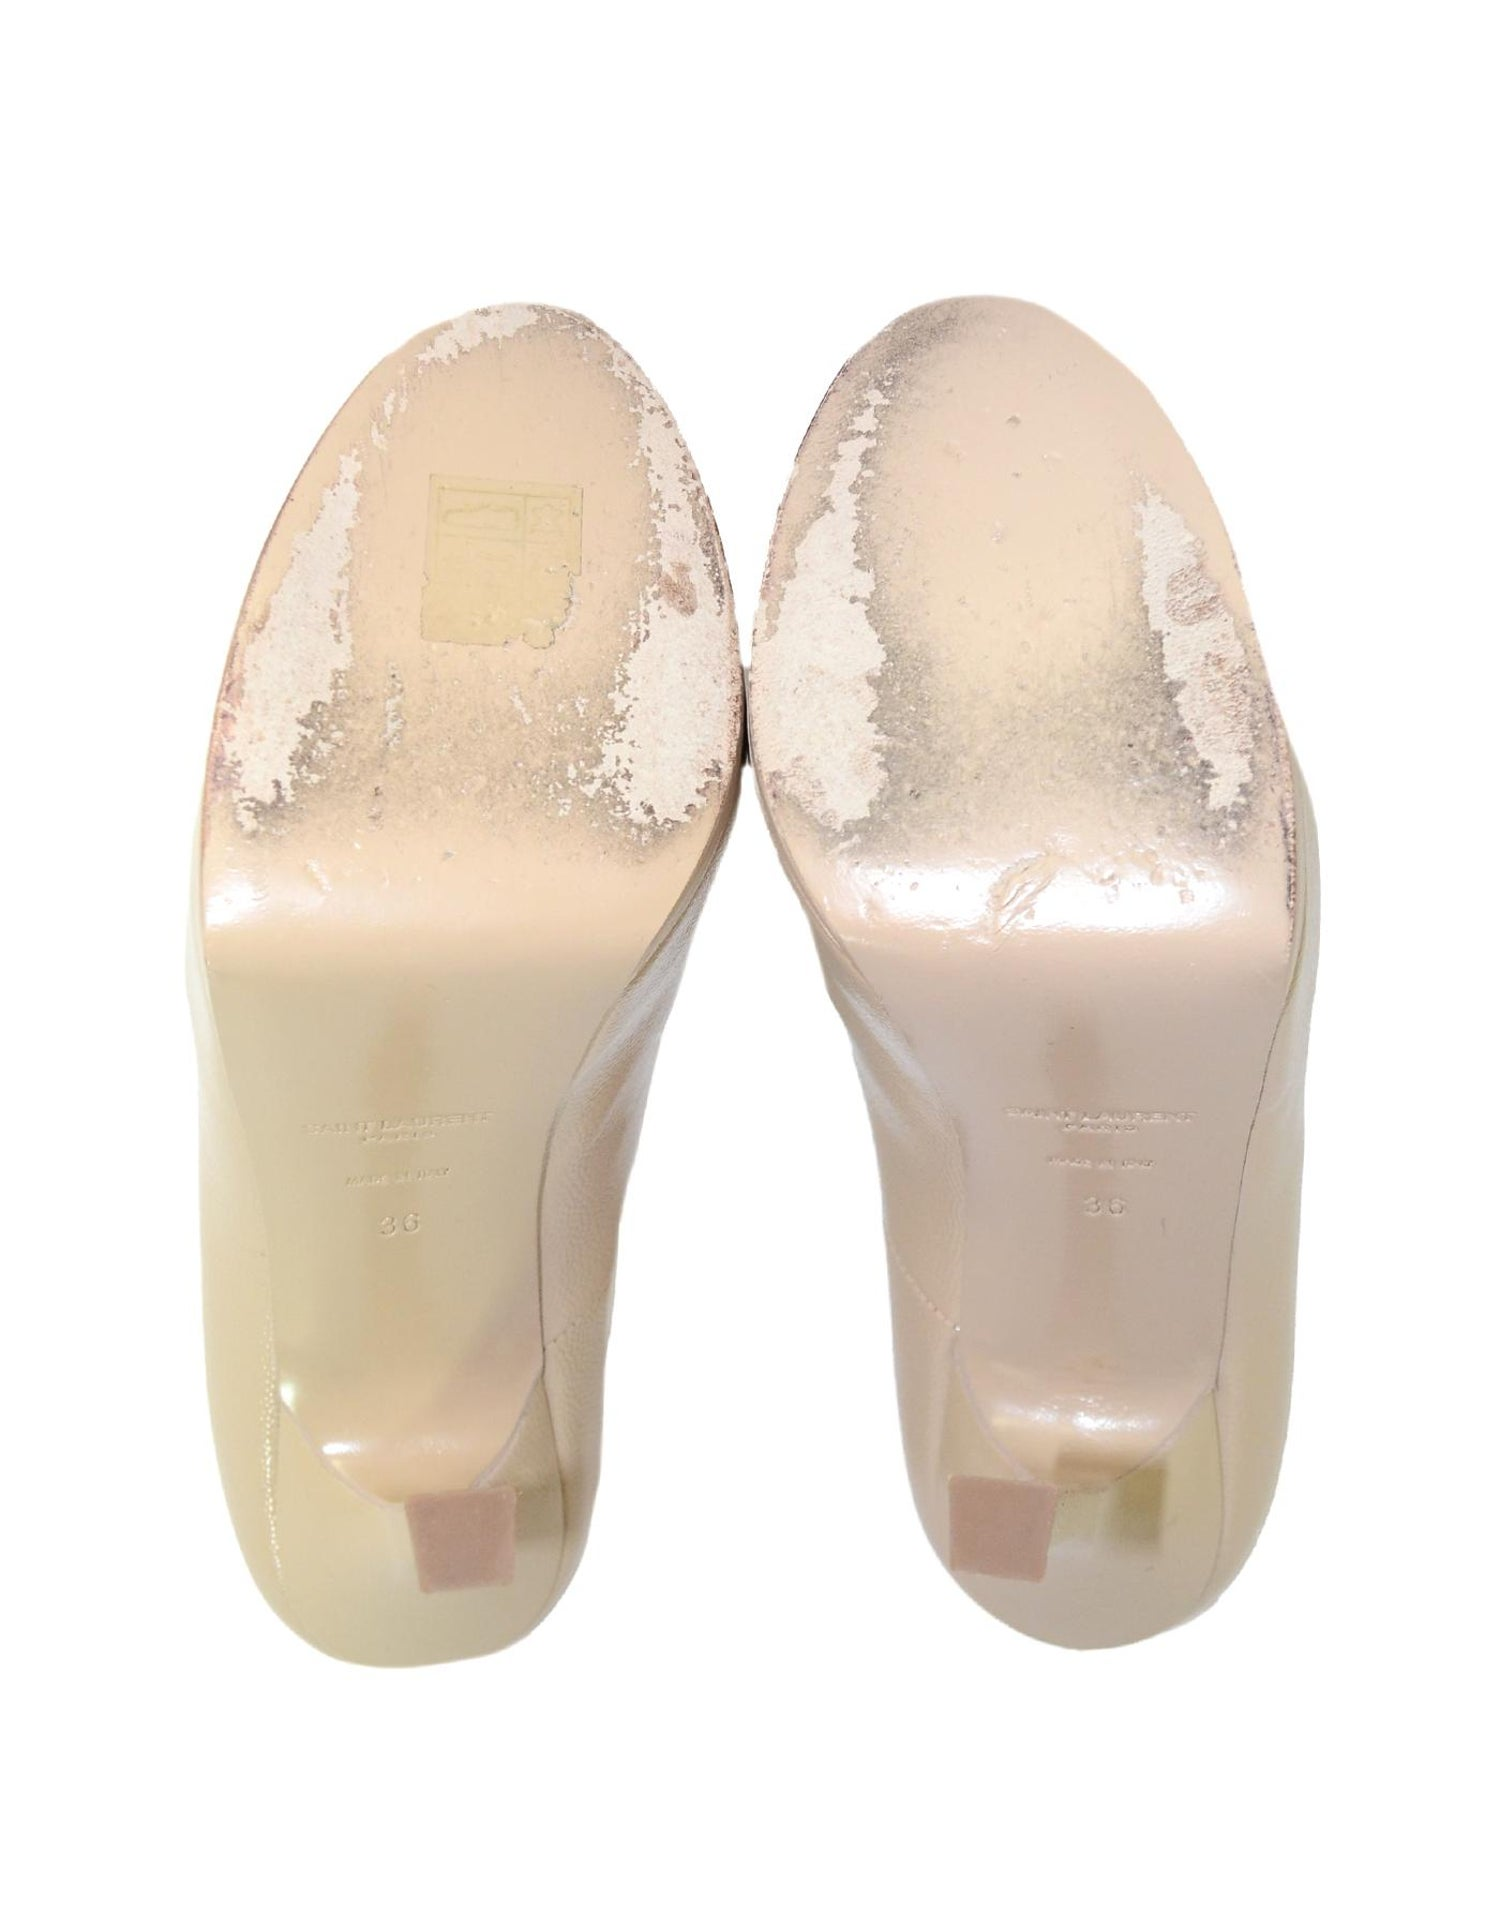 133652a9e9a YSL Yves Saint Laurent Nude Glazed Textured Leather Tribute Two 105 Pumps  Sz 36 For Sale at 1stdibs